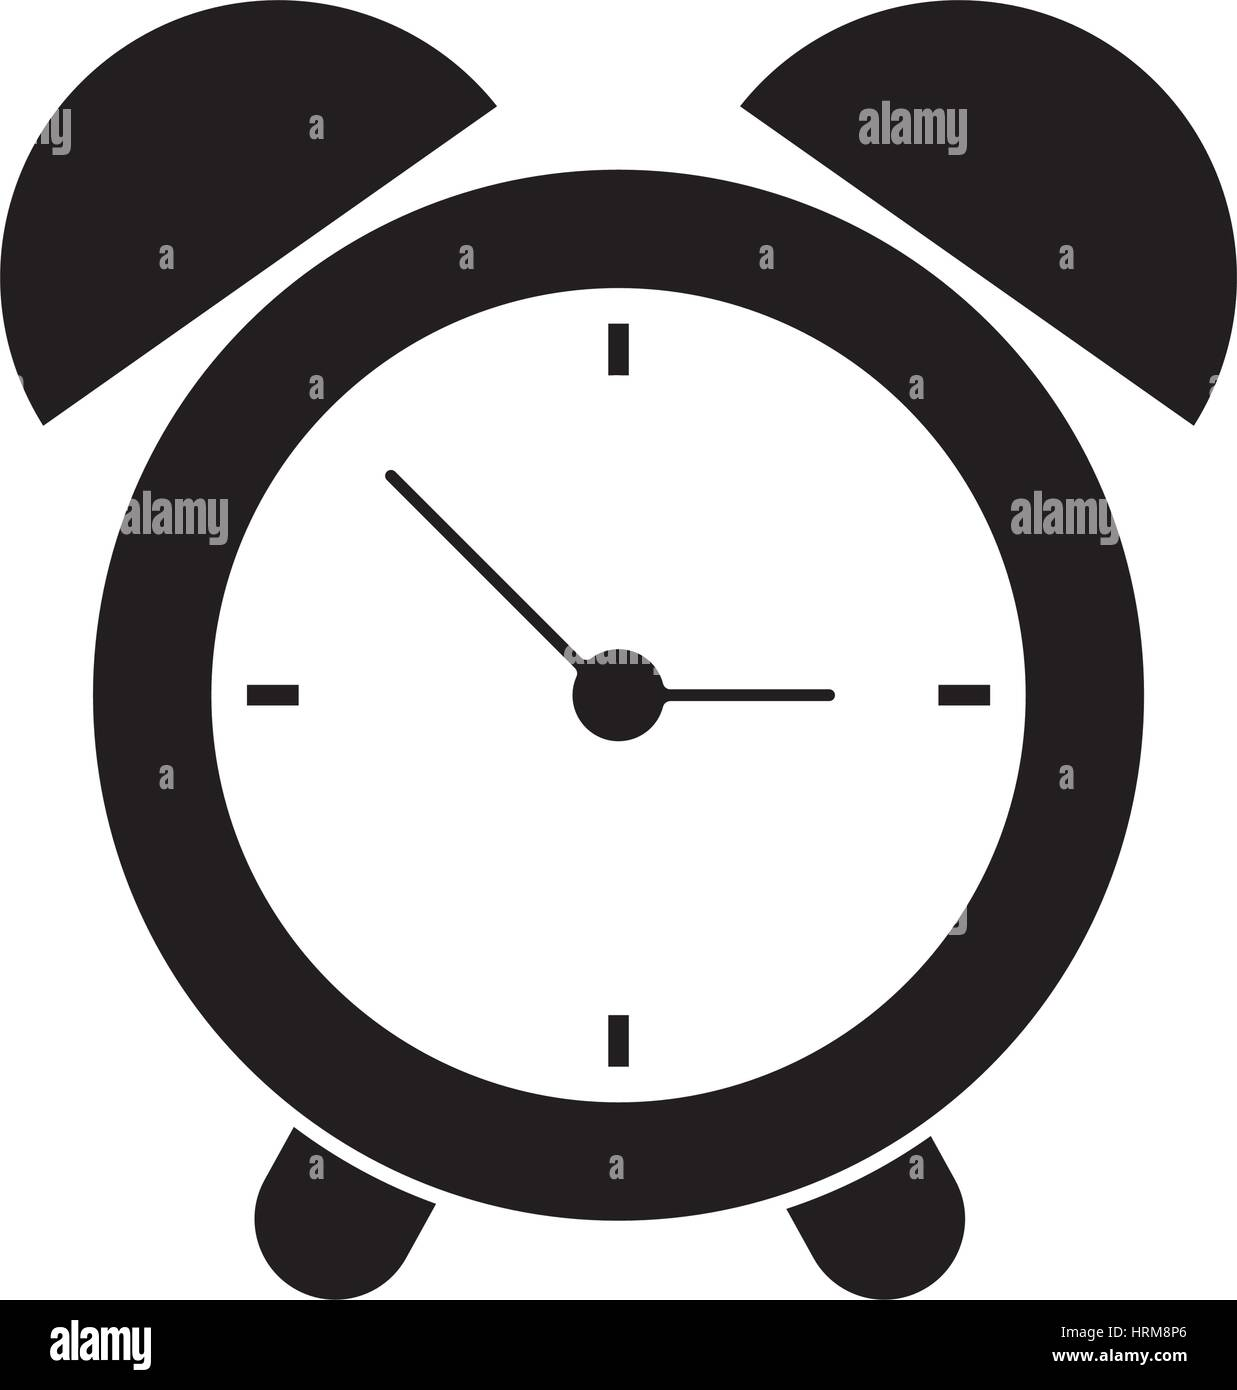 Clock Face Images